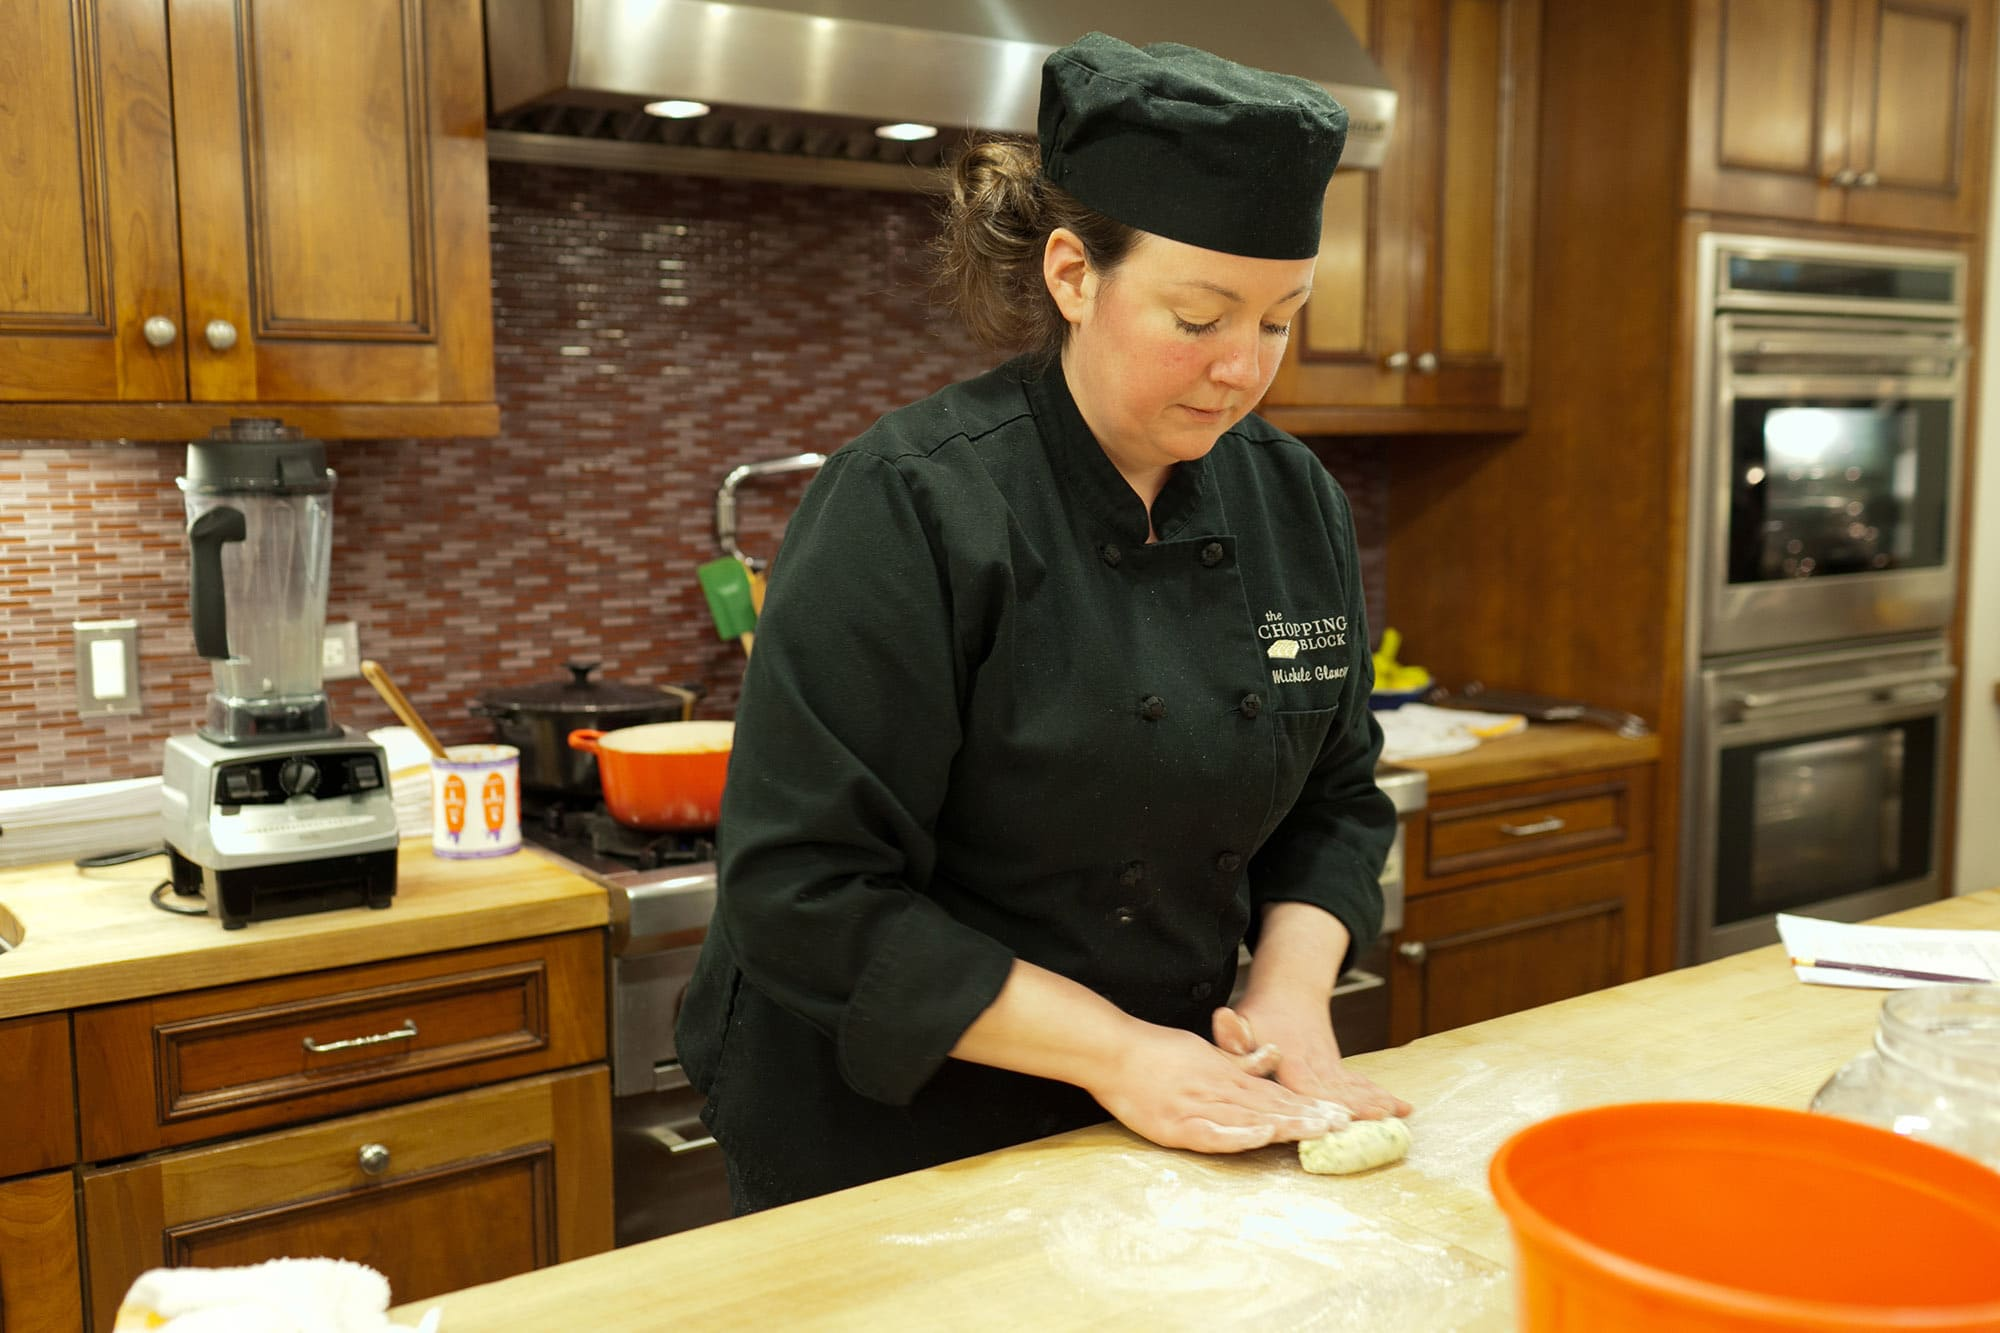 Fall Gnocchi Making Class at the Lincoln Square Chopping Block in Chicago, Illinois